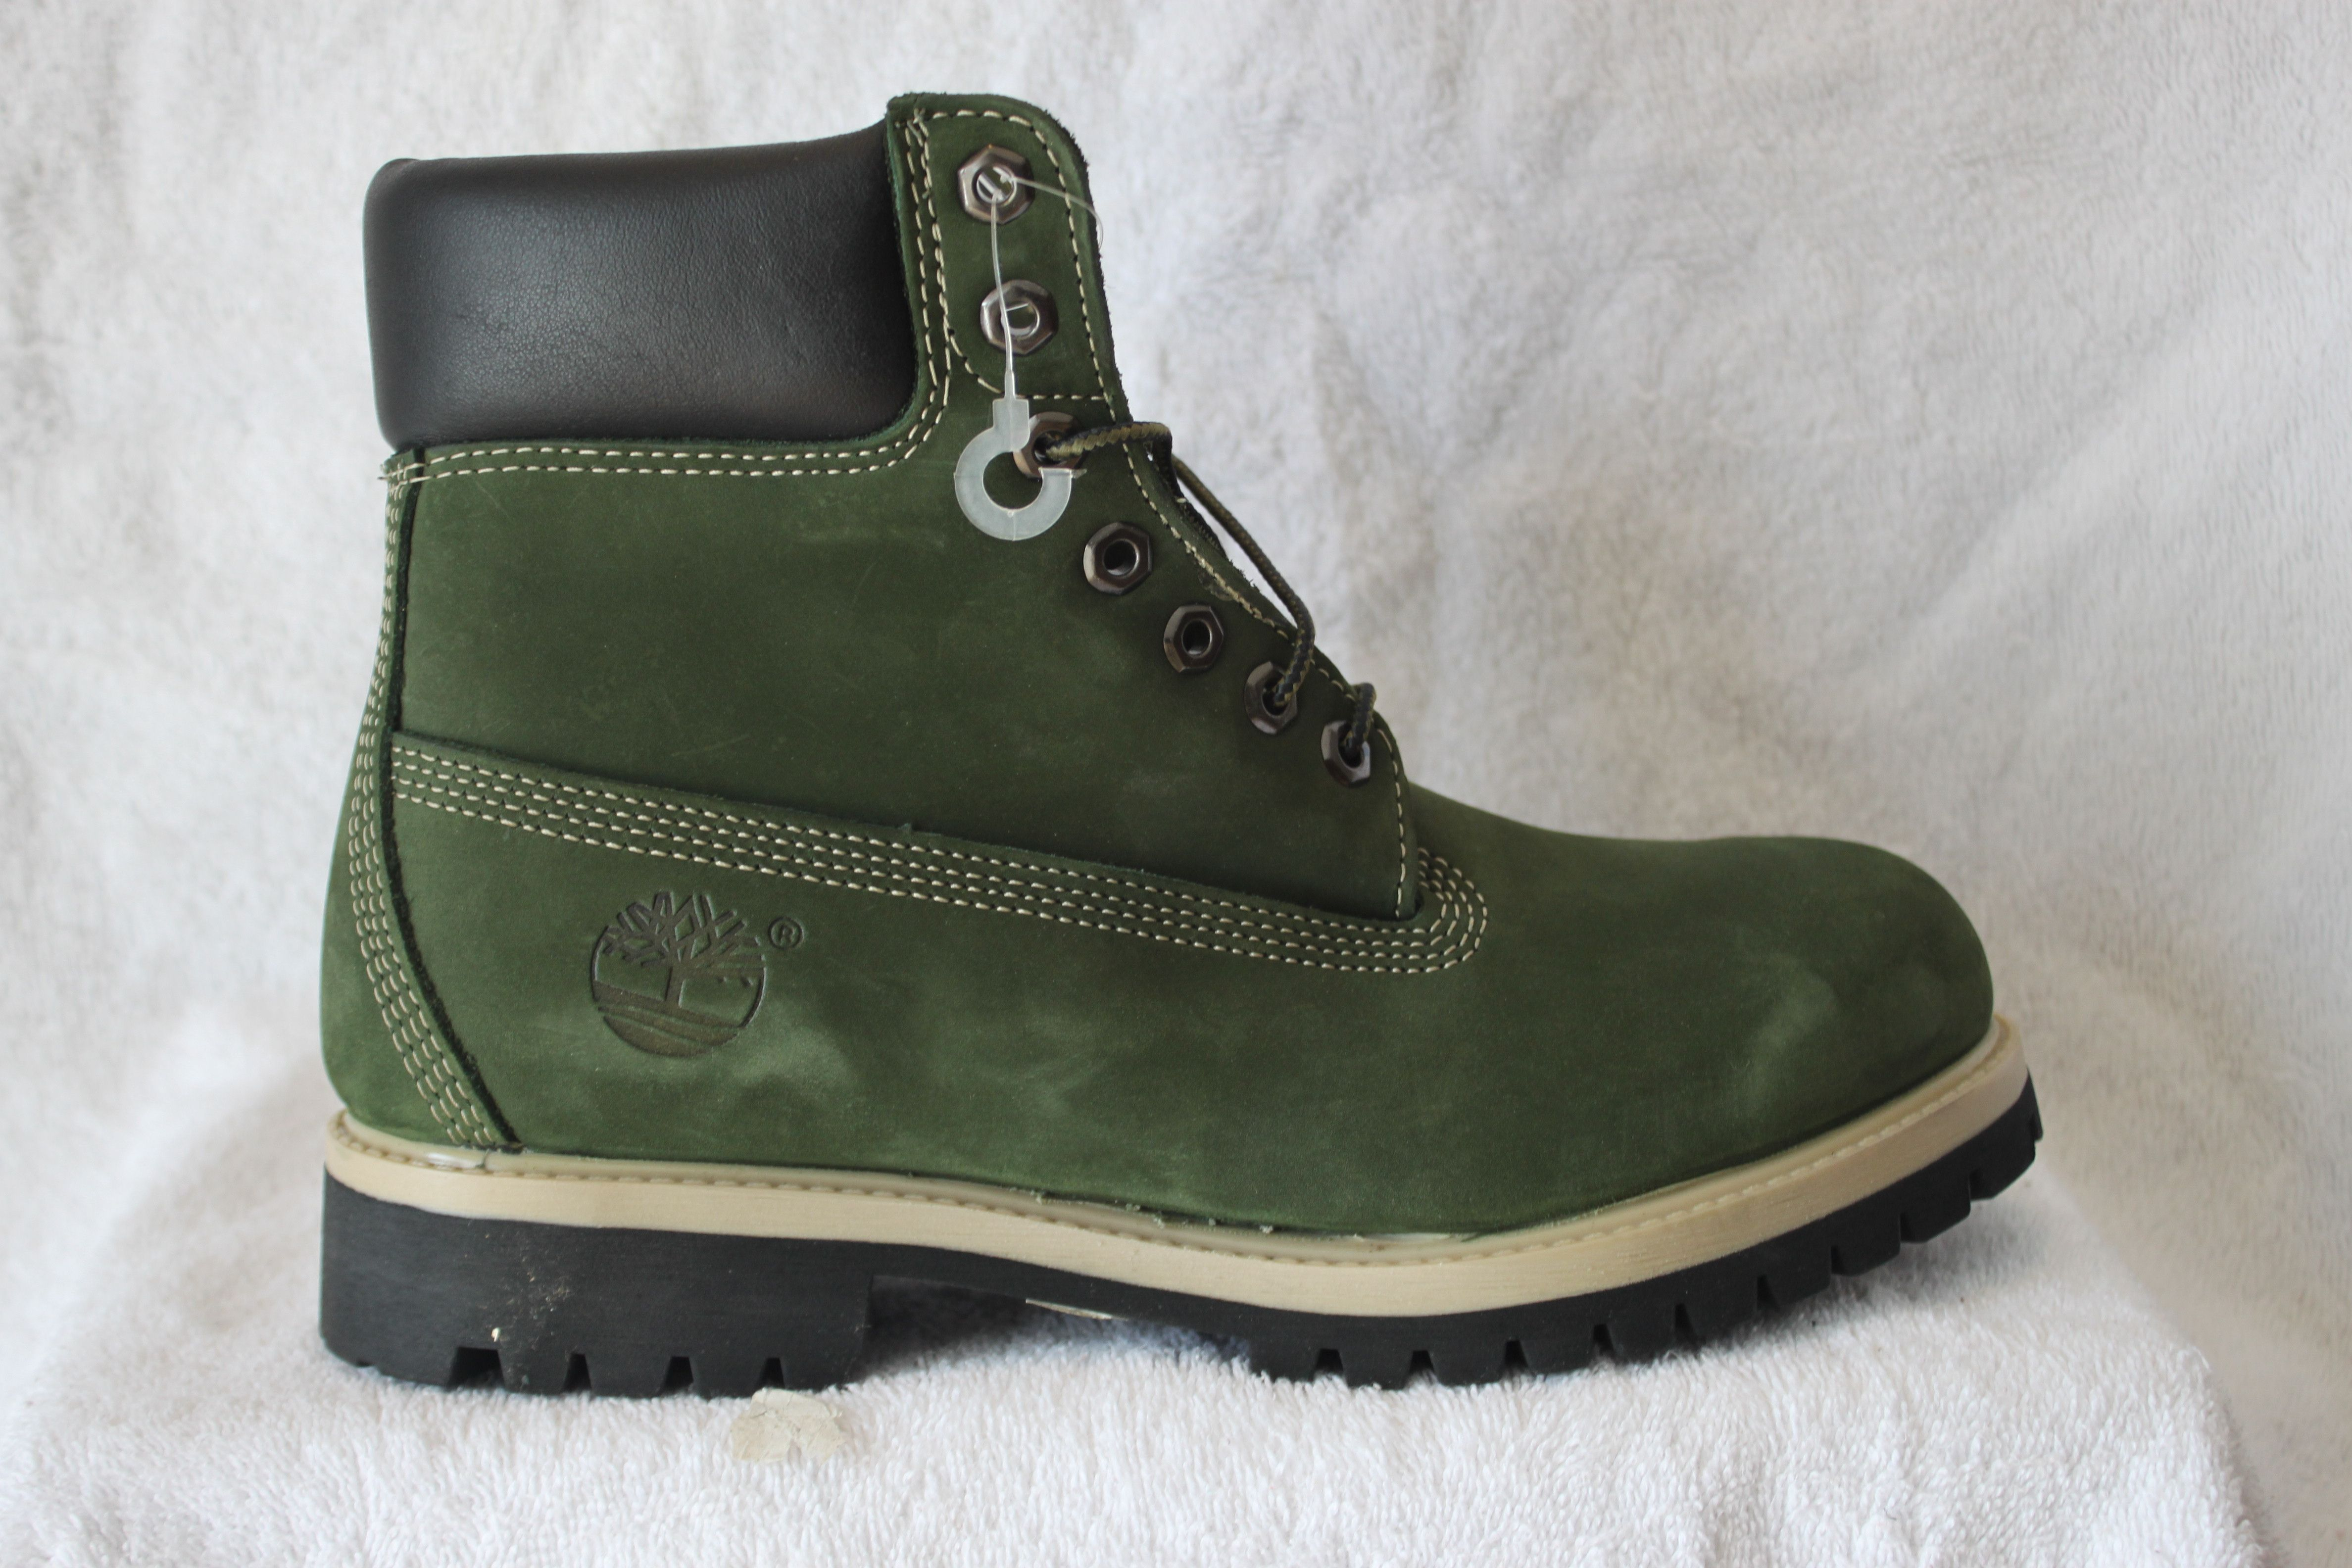 Model Timberland Womenu0026#39;s Shoes 8263R Colour Grey Green | Women | Sportlife Shop Online